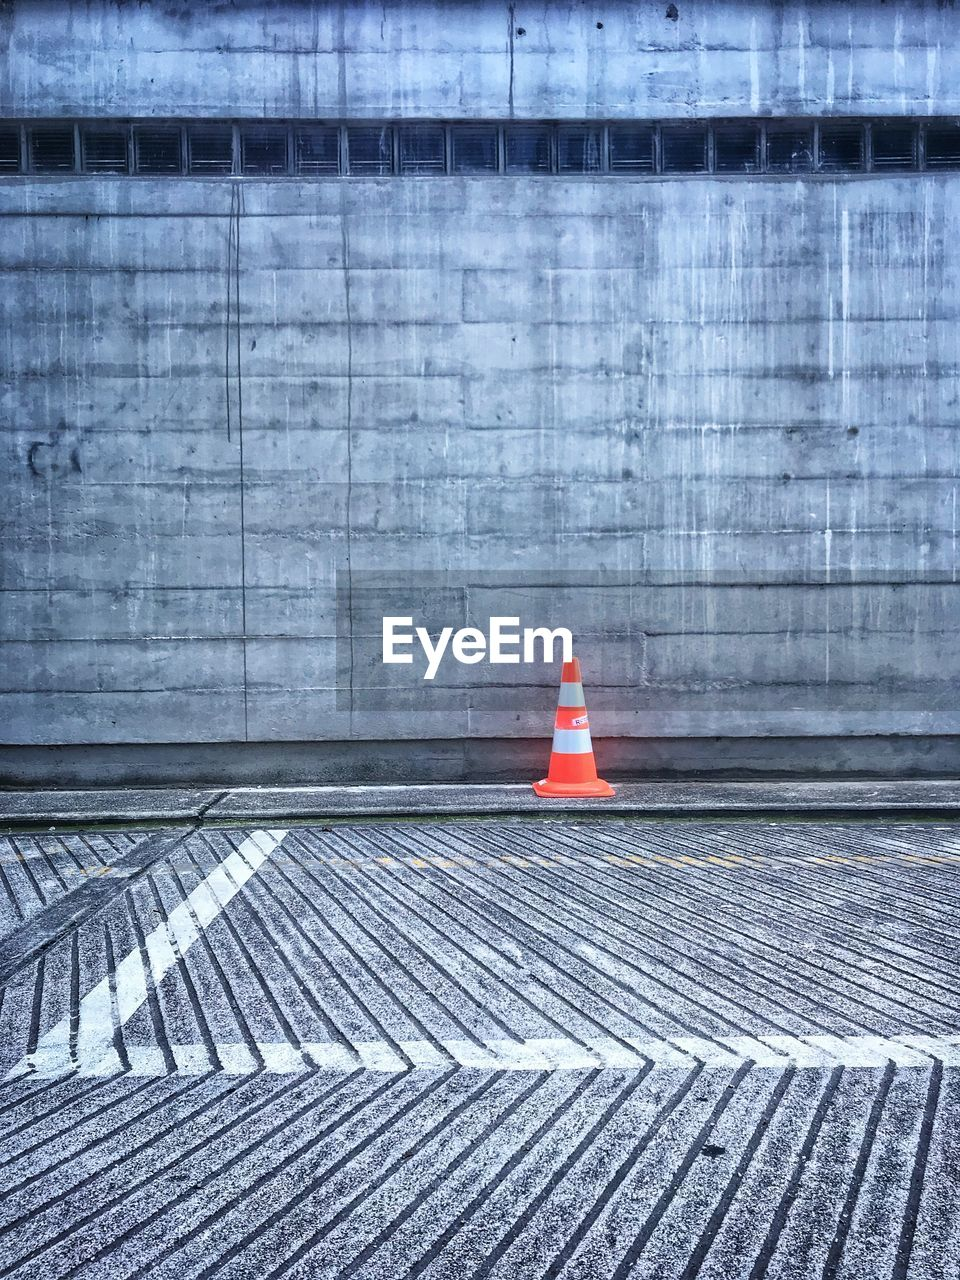 sign, security, no people, traffic cone, guidance, red, architecture, safety, warning sign, cone, day, built structure, communication, protection, outdoors, city, road, direction, nature, building exterior, rules